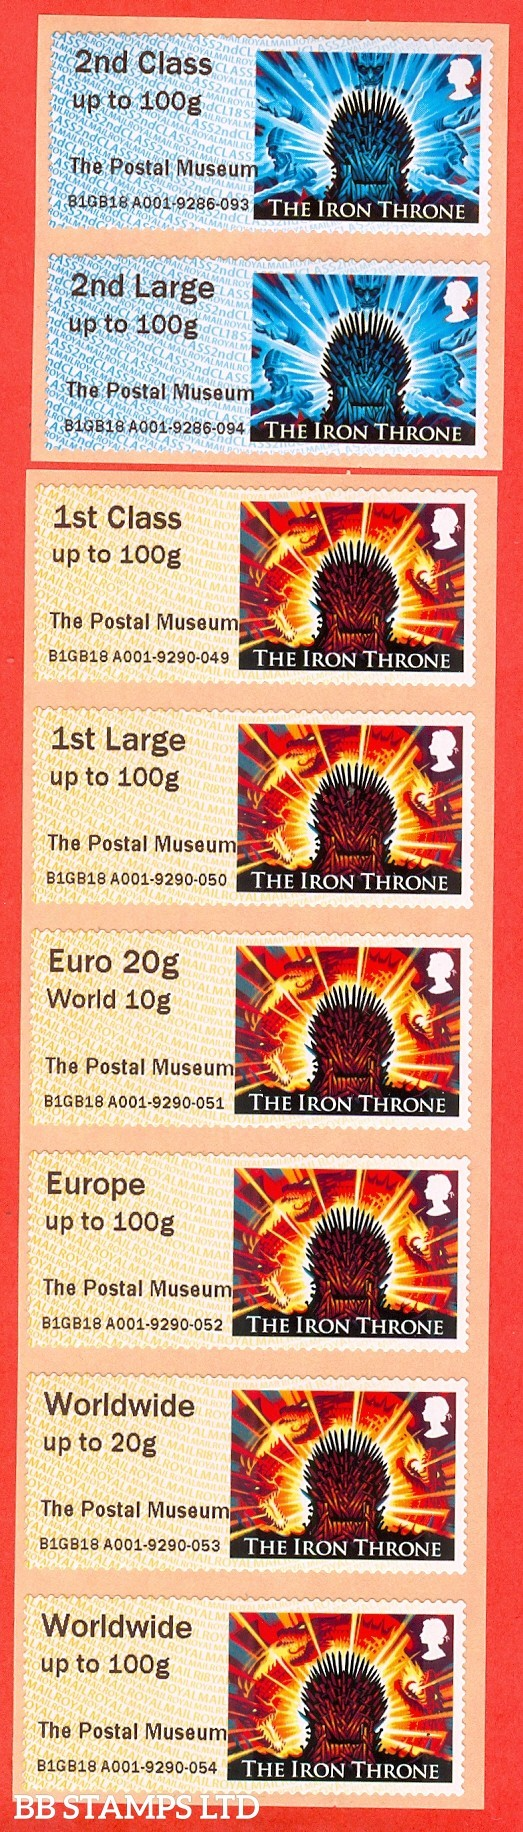 2018 Game Of Thrones - The Iron Throne: The Postal Museum 2nd - Worldwide 100g (set of 8) Type IIIA CL18/R18Y (BK21,P14)